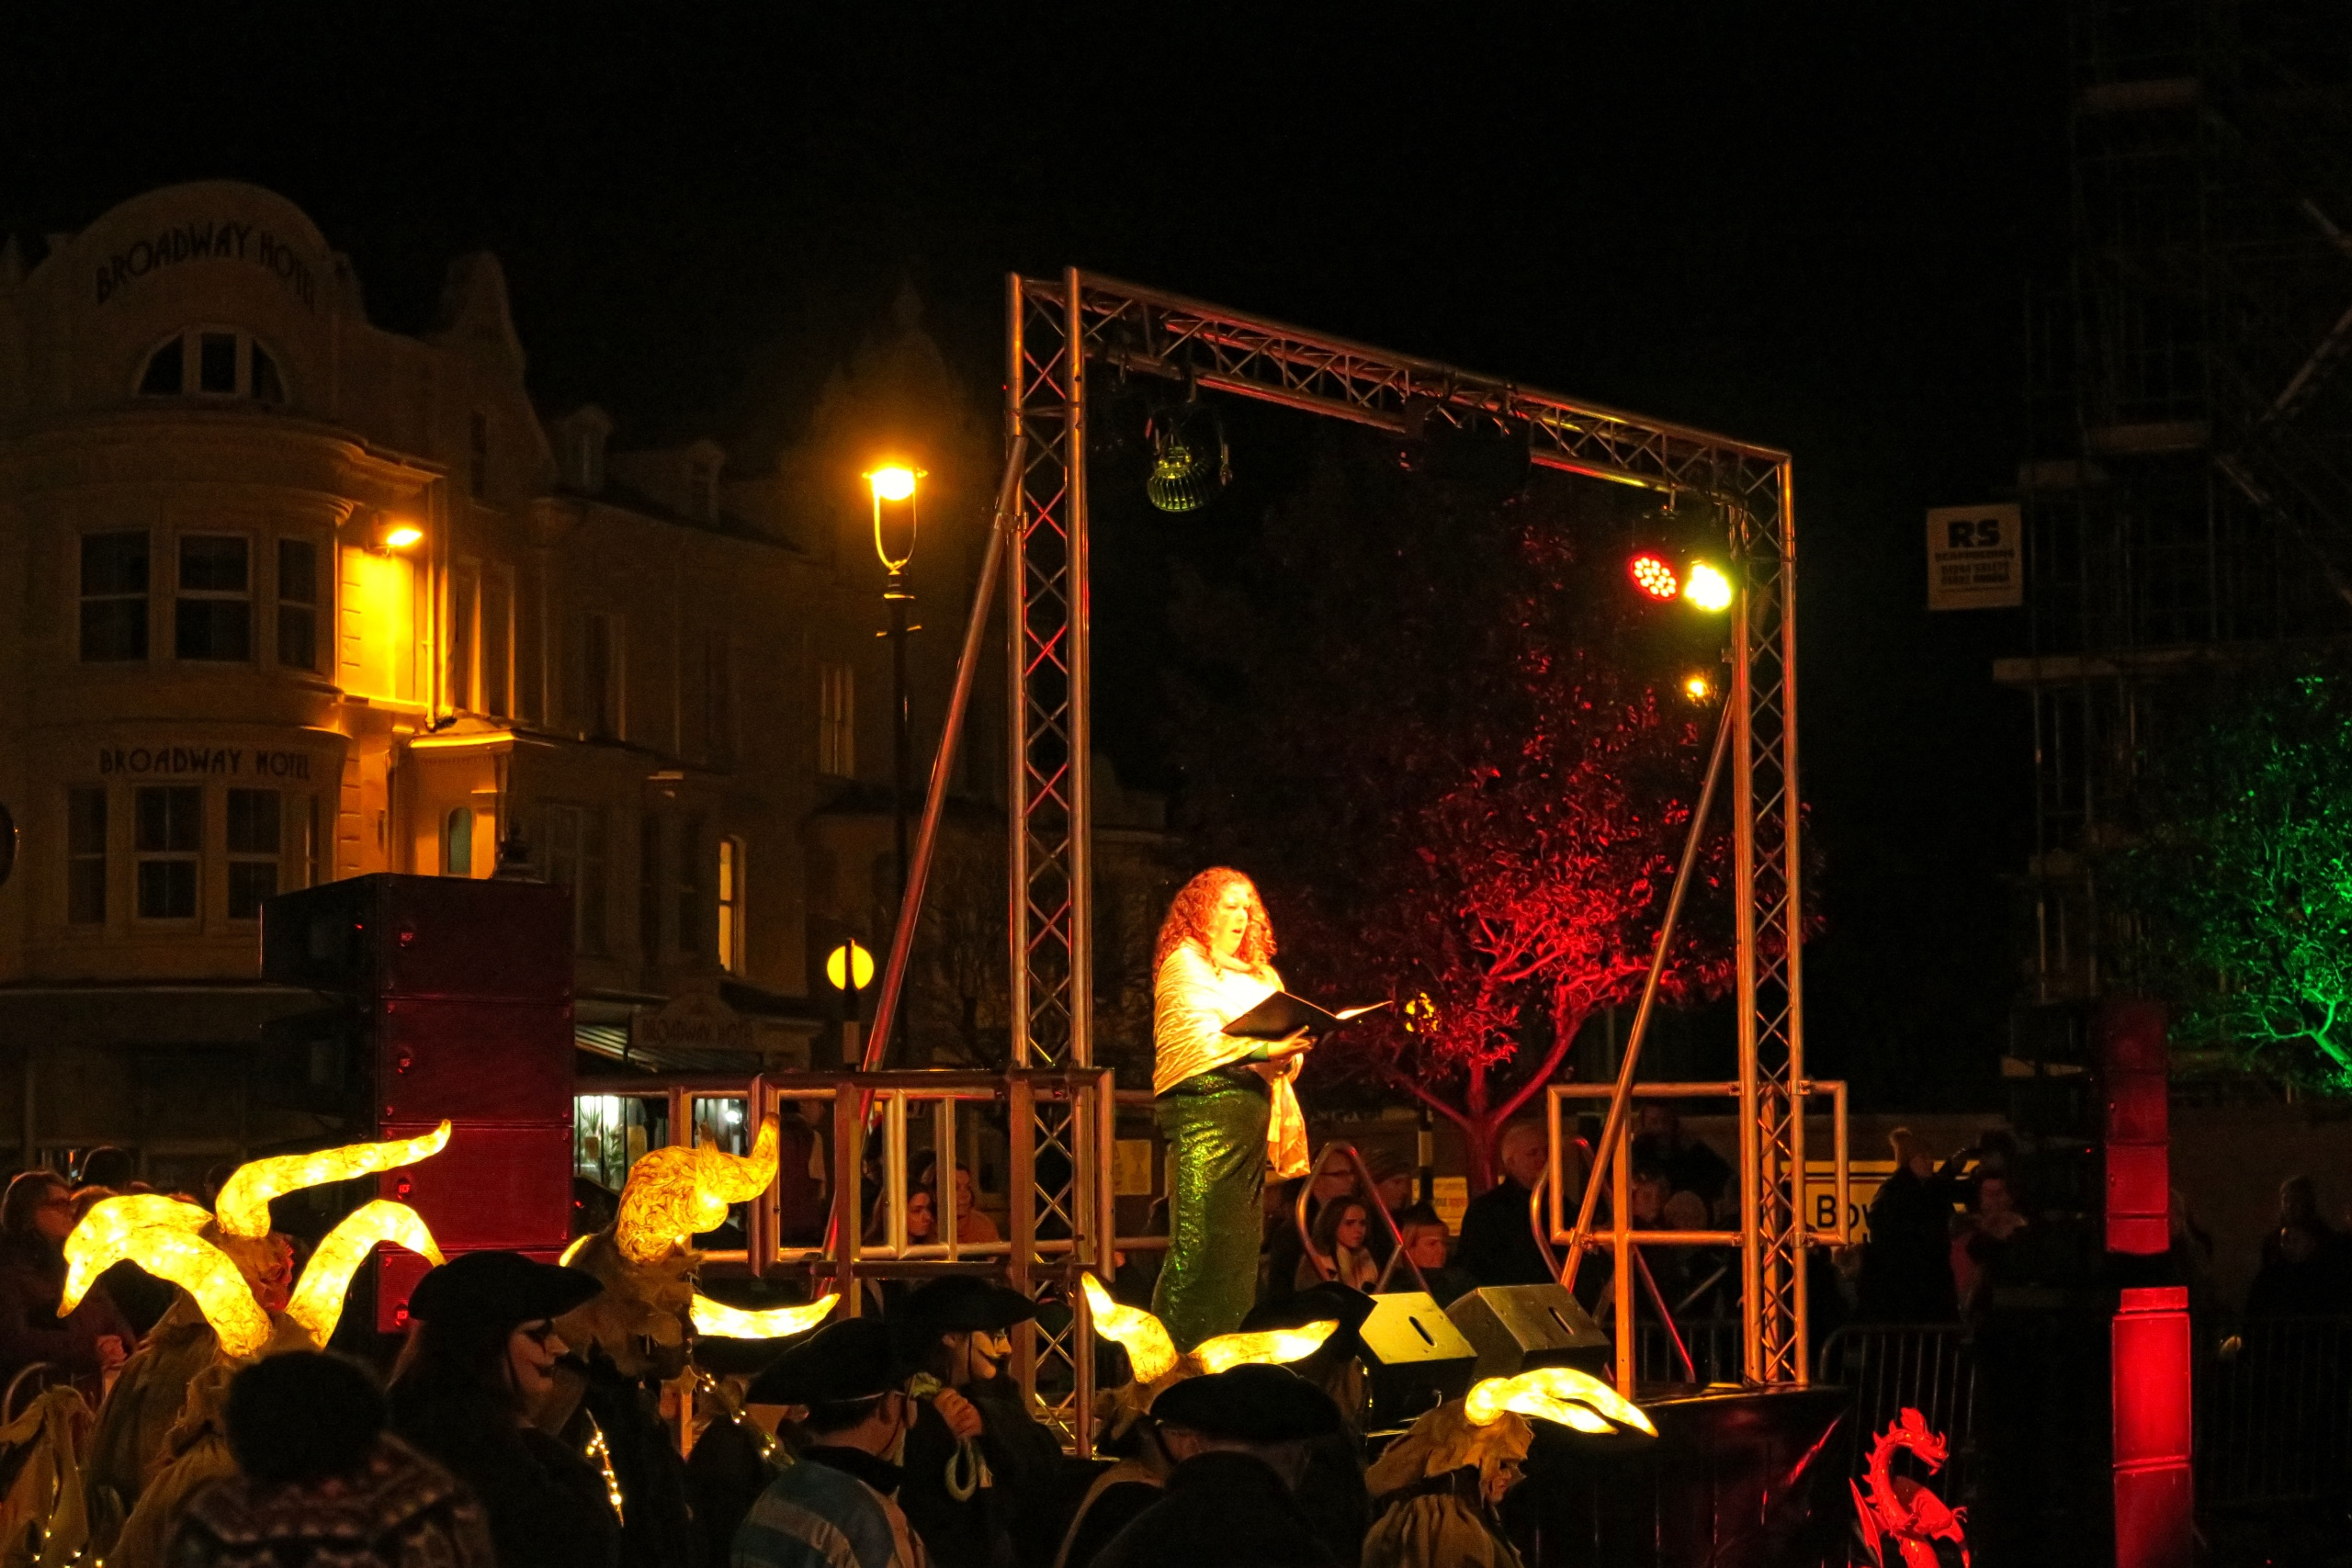 Coloured outdoor lighting at the Llandudno Winter Light / Golau Gaeaf event, in North Wales. Parade finale with opera singer, on outdoor stage. Stage illuminated with overhead truss in red, yellow and warm white.